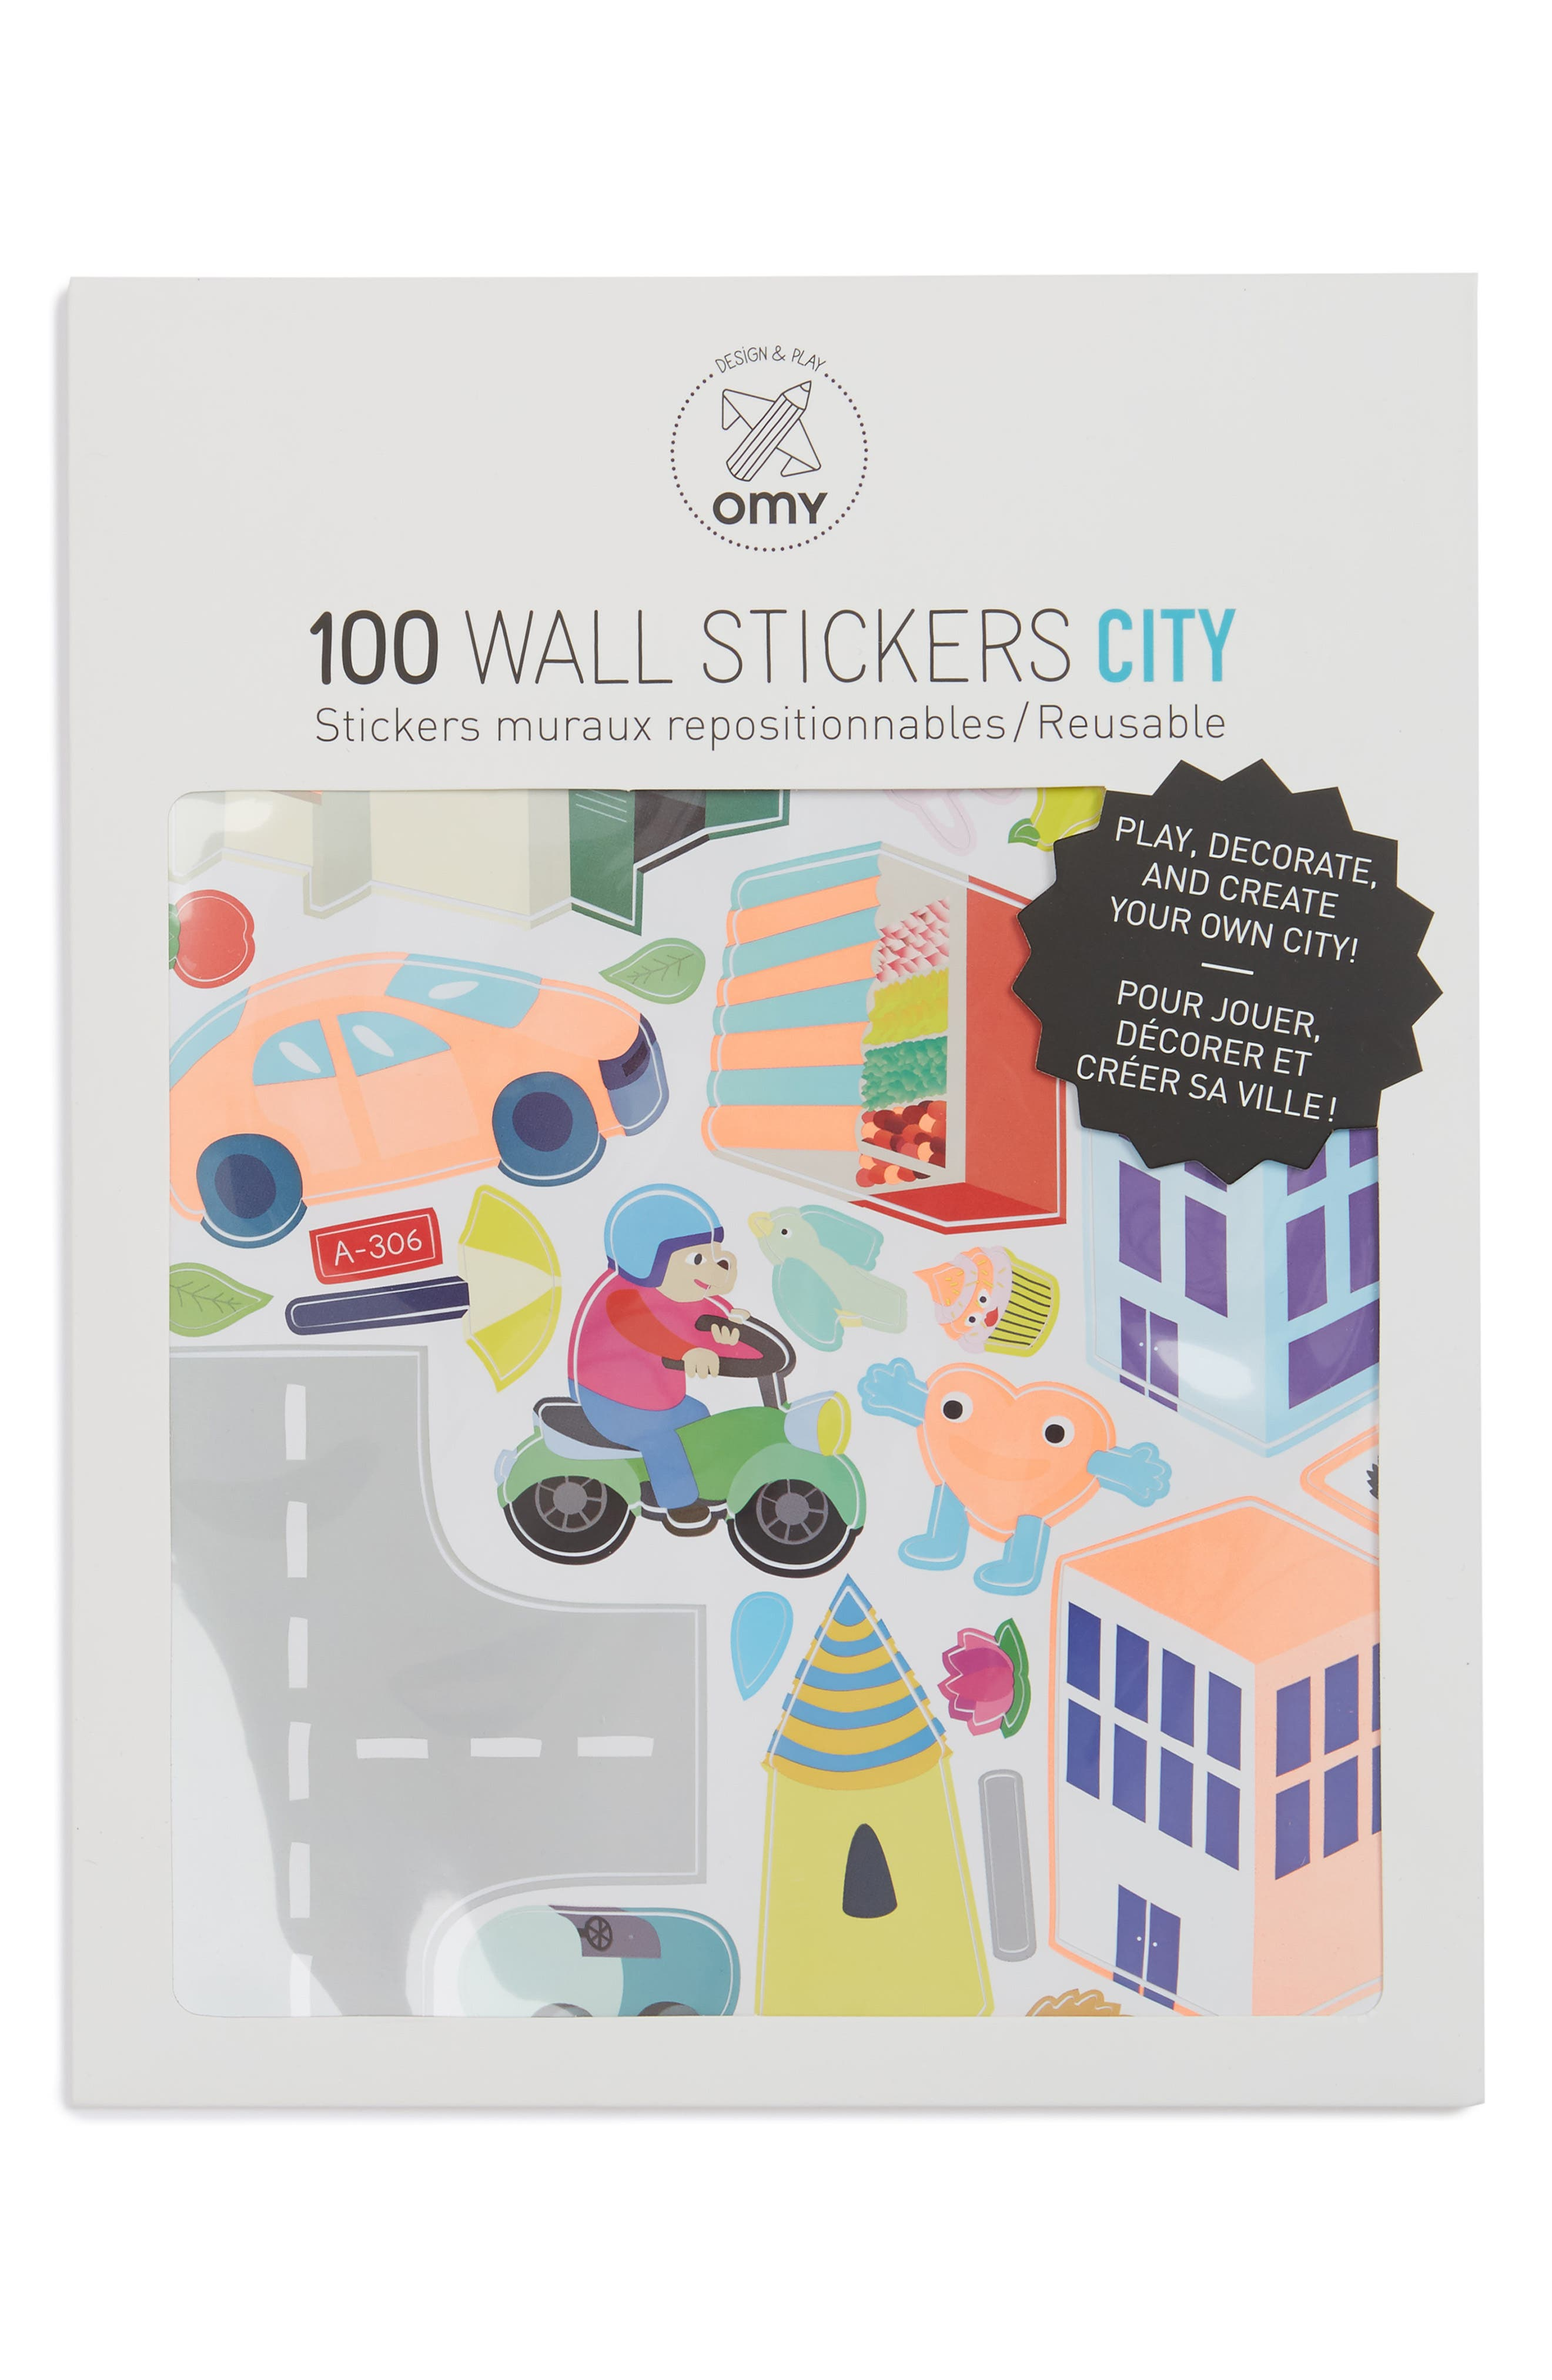 Alternate Image 1 Selected - OMY City Set of 100 Reusable Wall Stickers